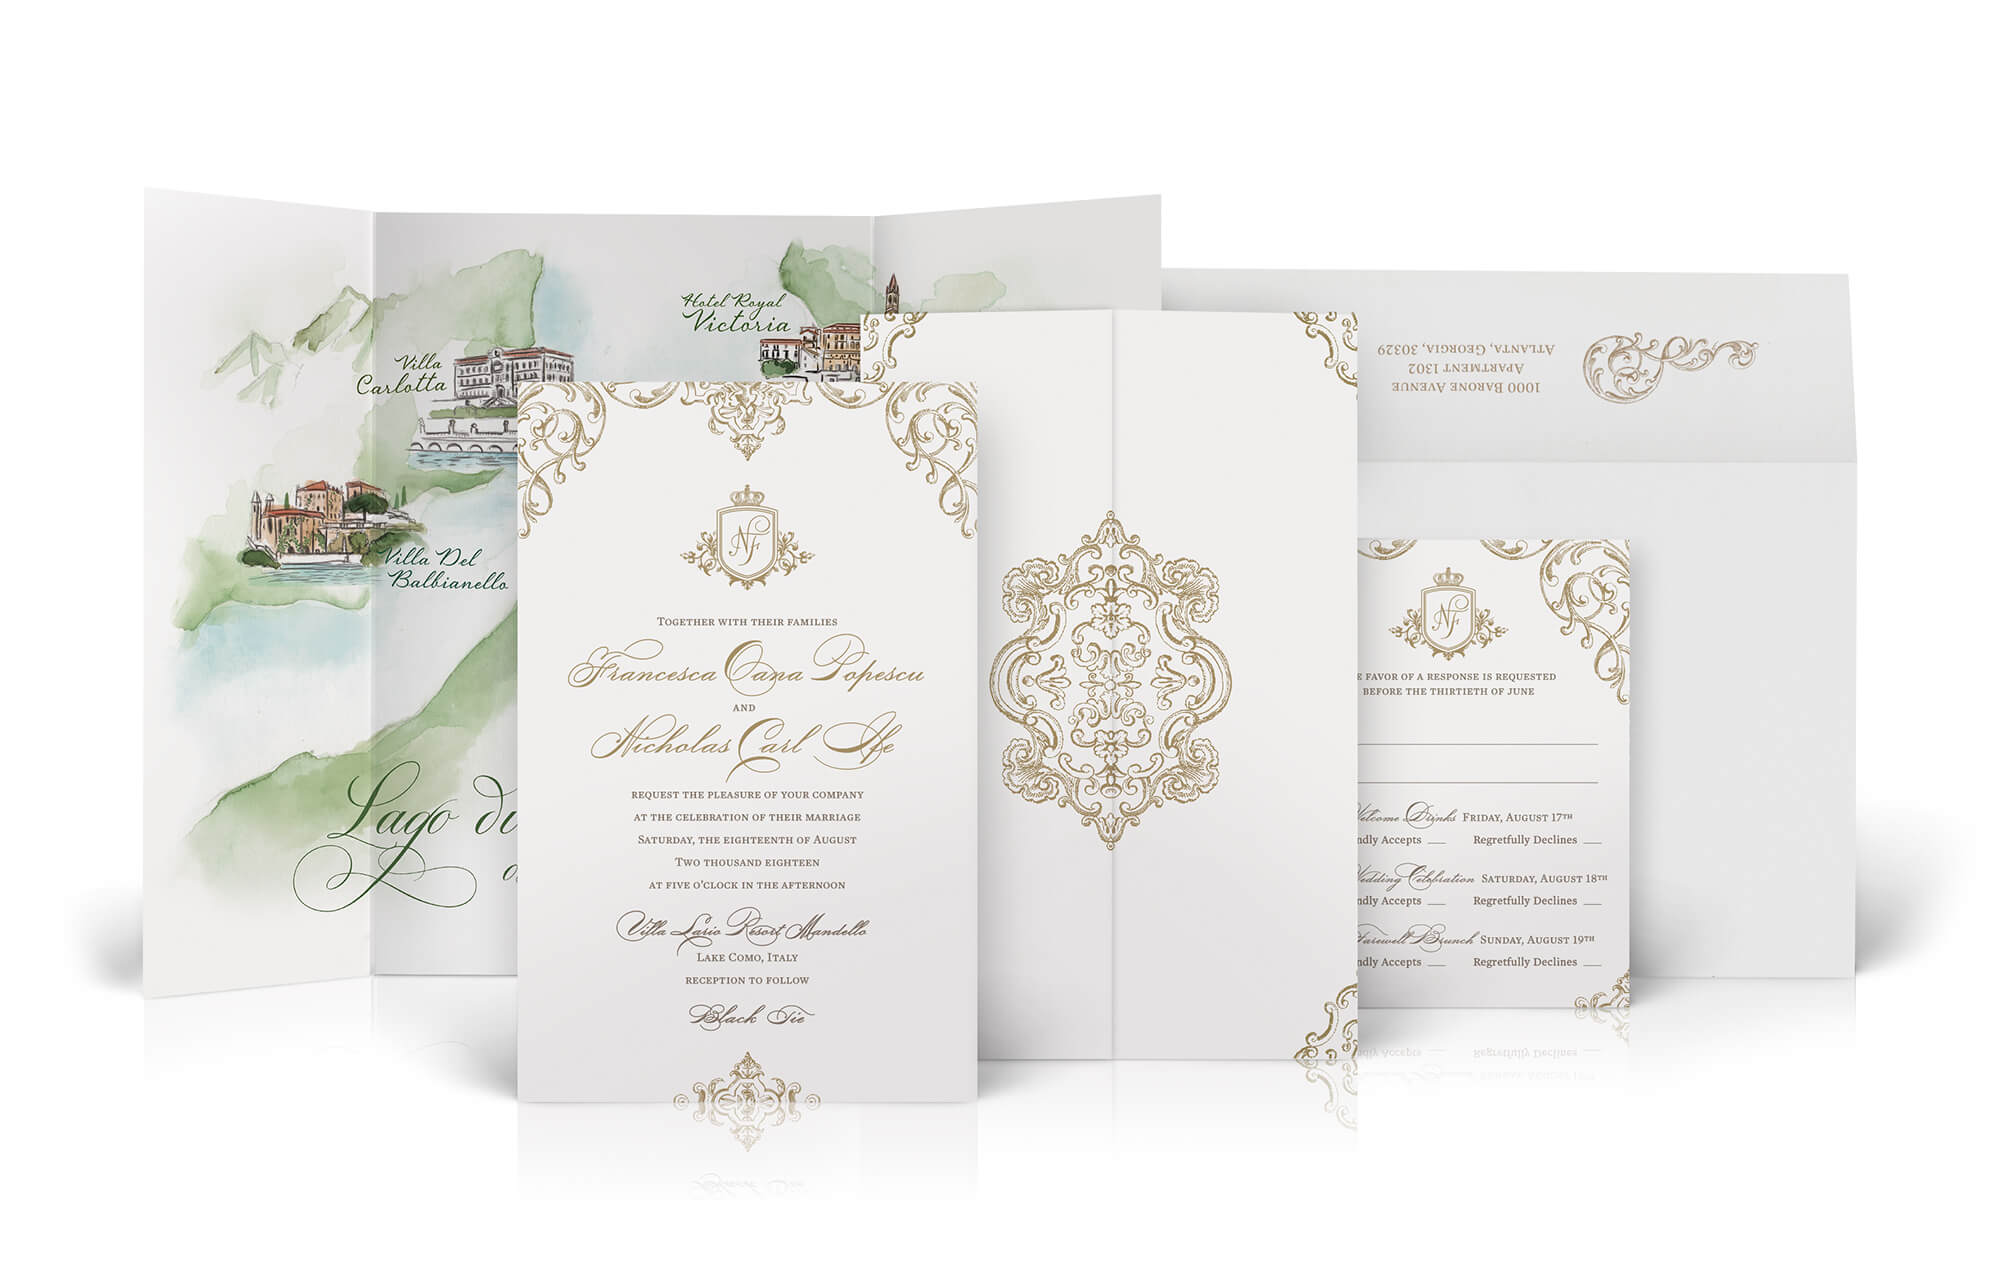 Lake Como wedding invitation